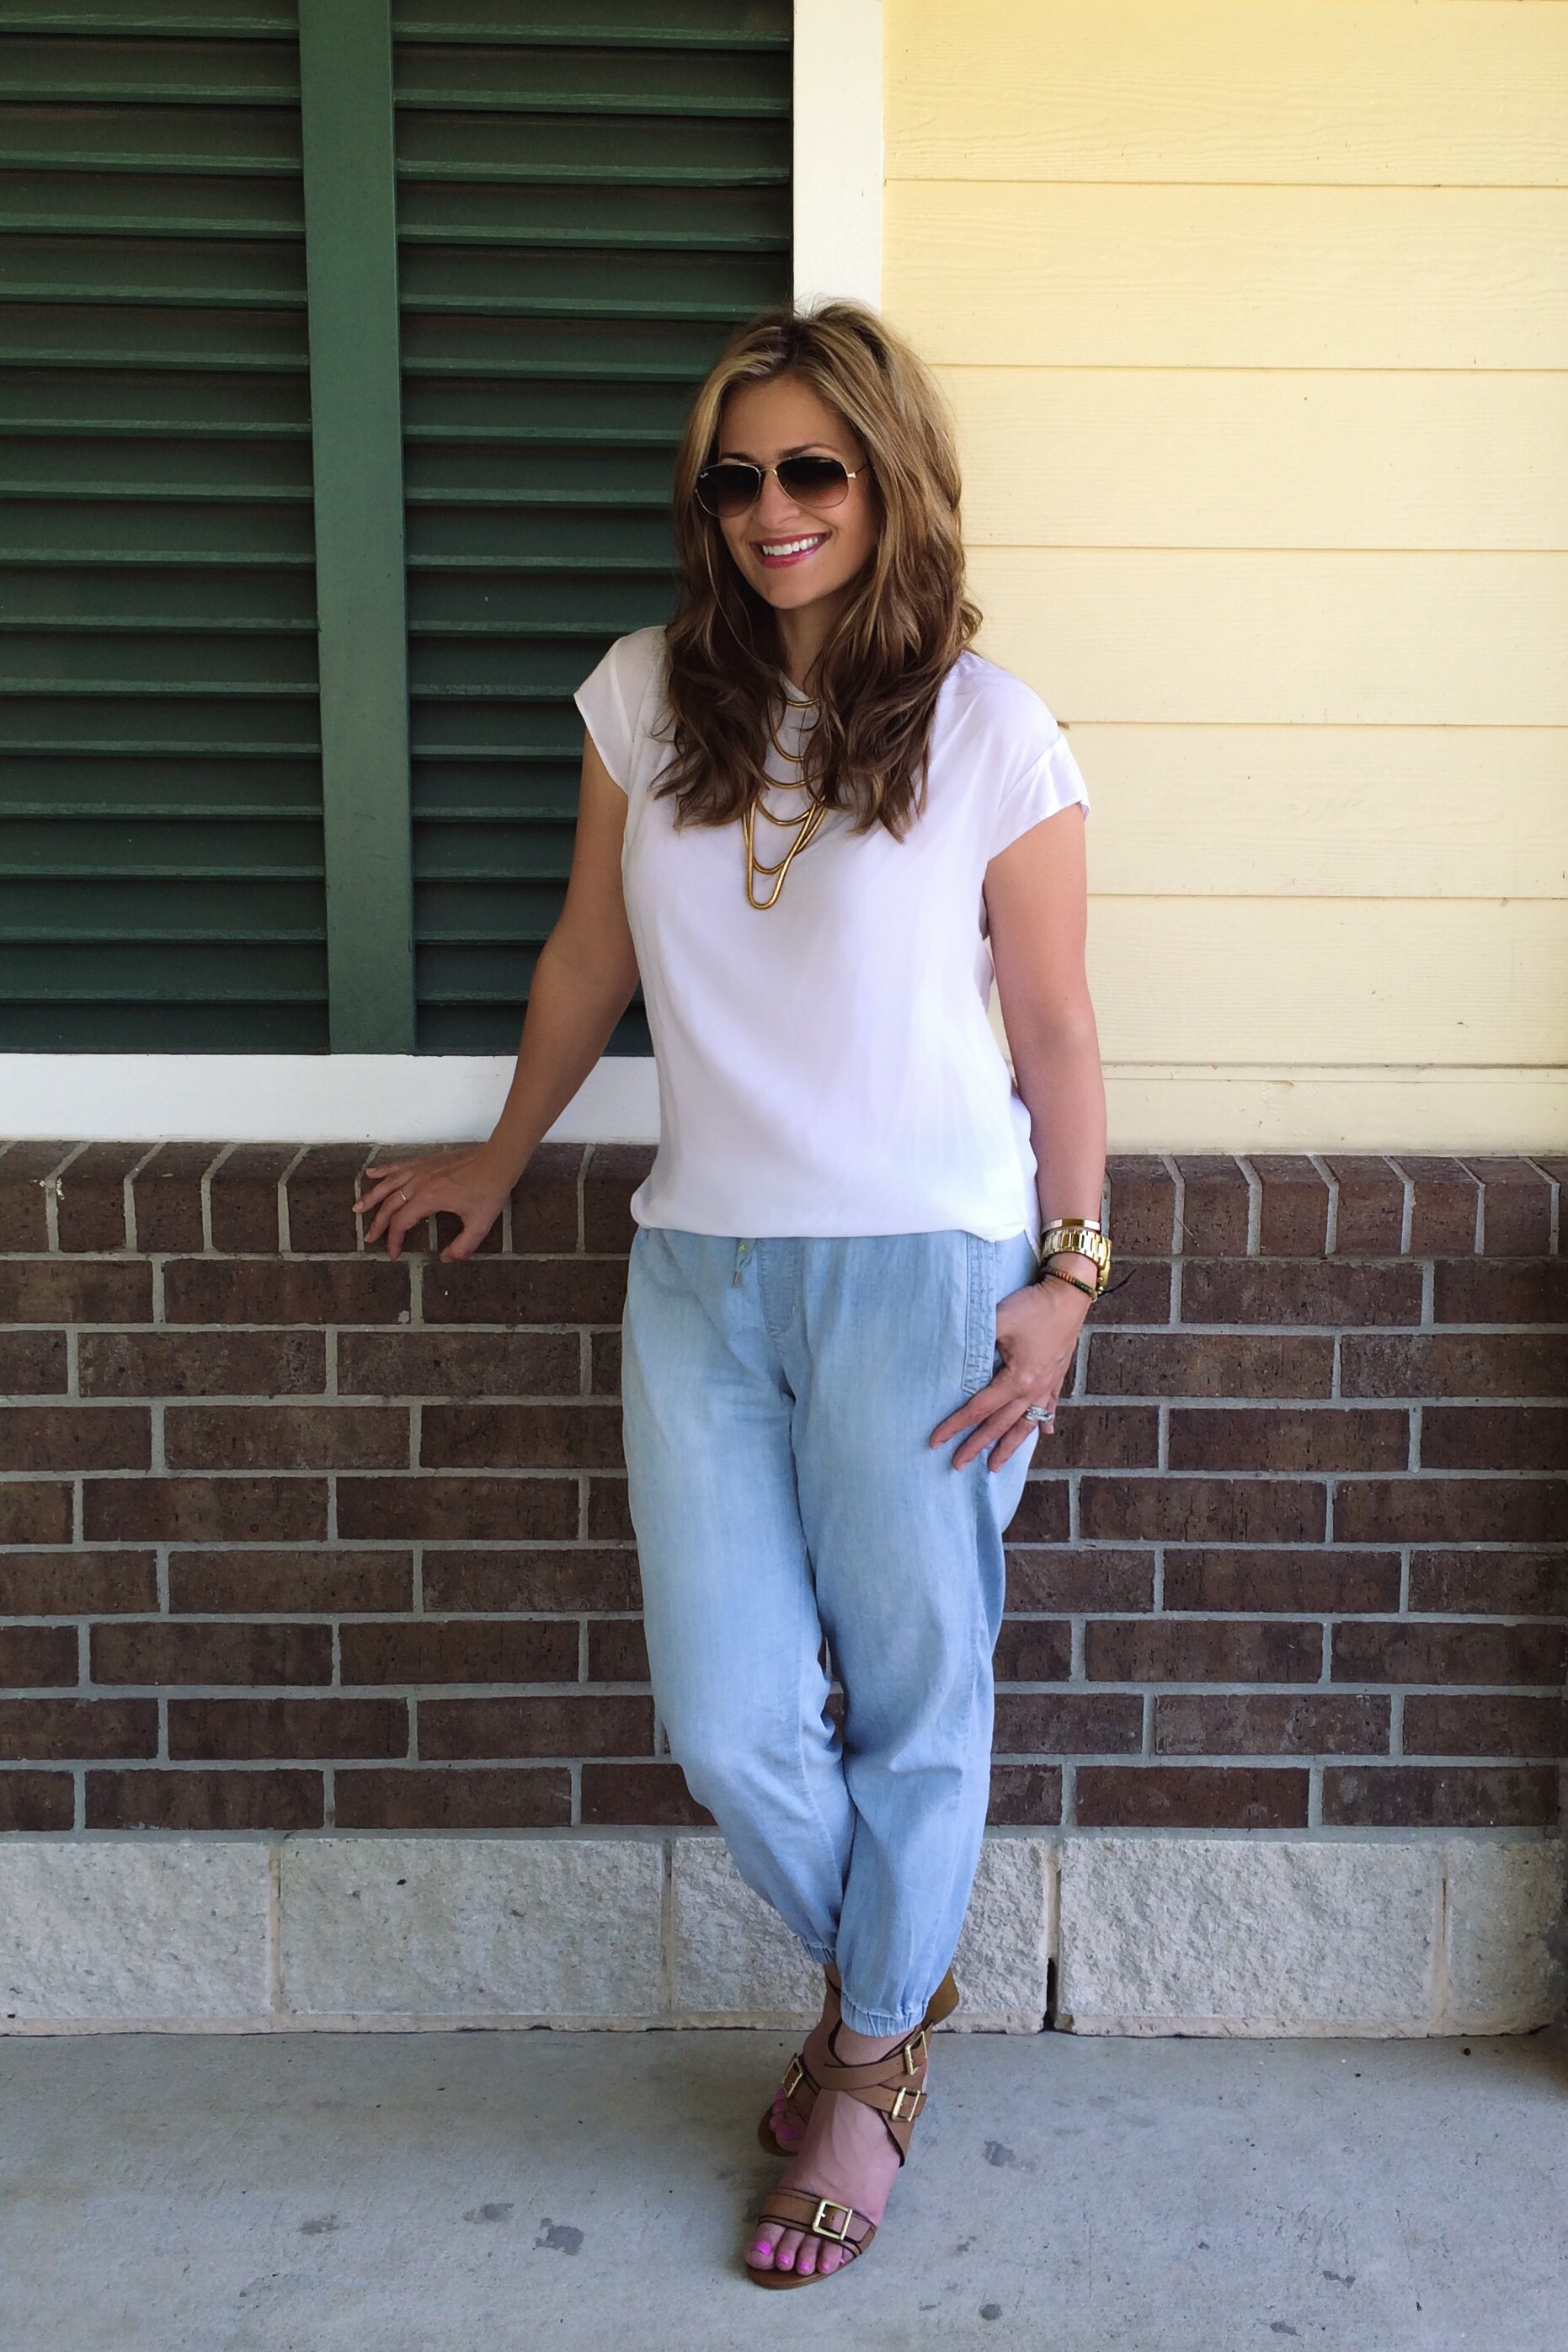 Blouse: Gap (old but similar and even cuter  here ) Joggers:  Anthropologie  Shoes:  Isola  Necklace:  Baublebar